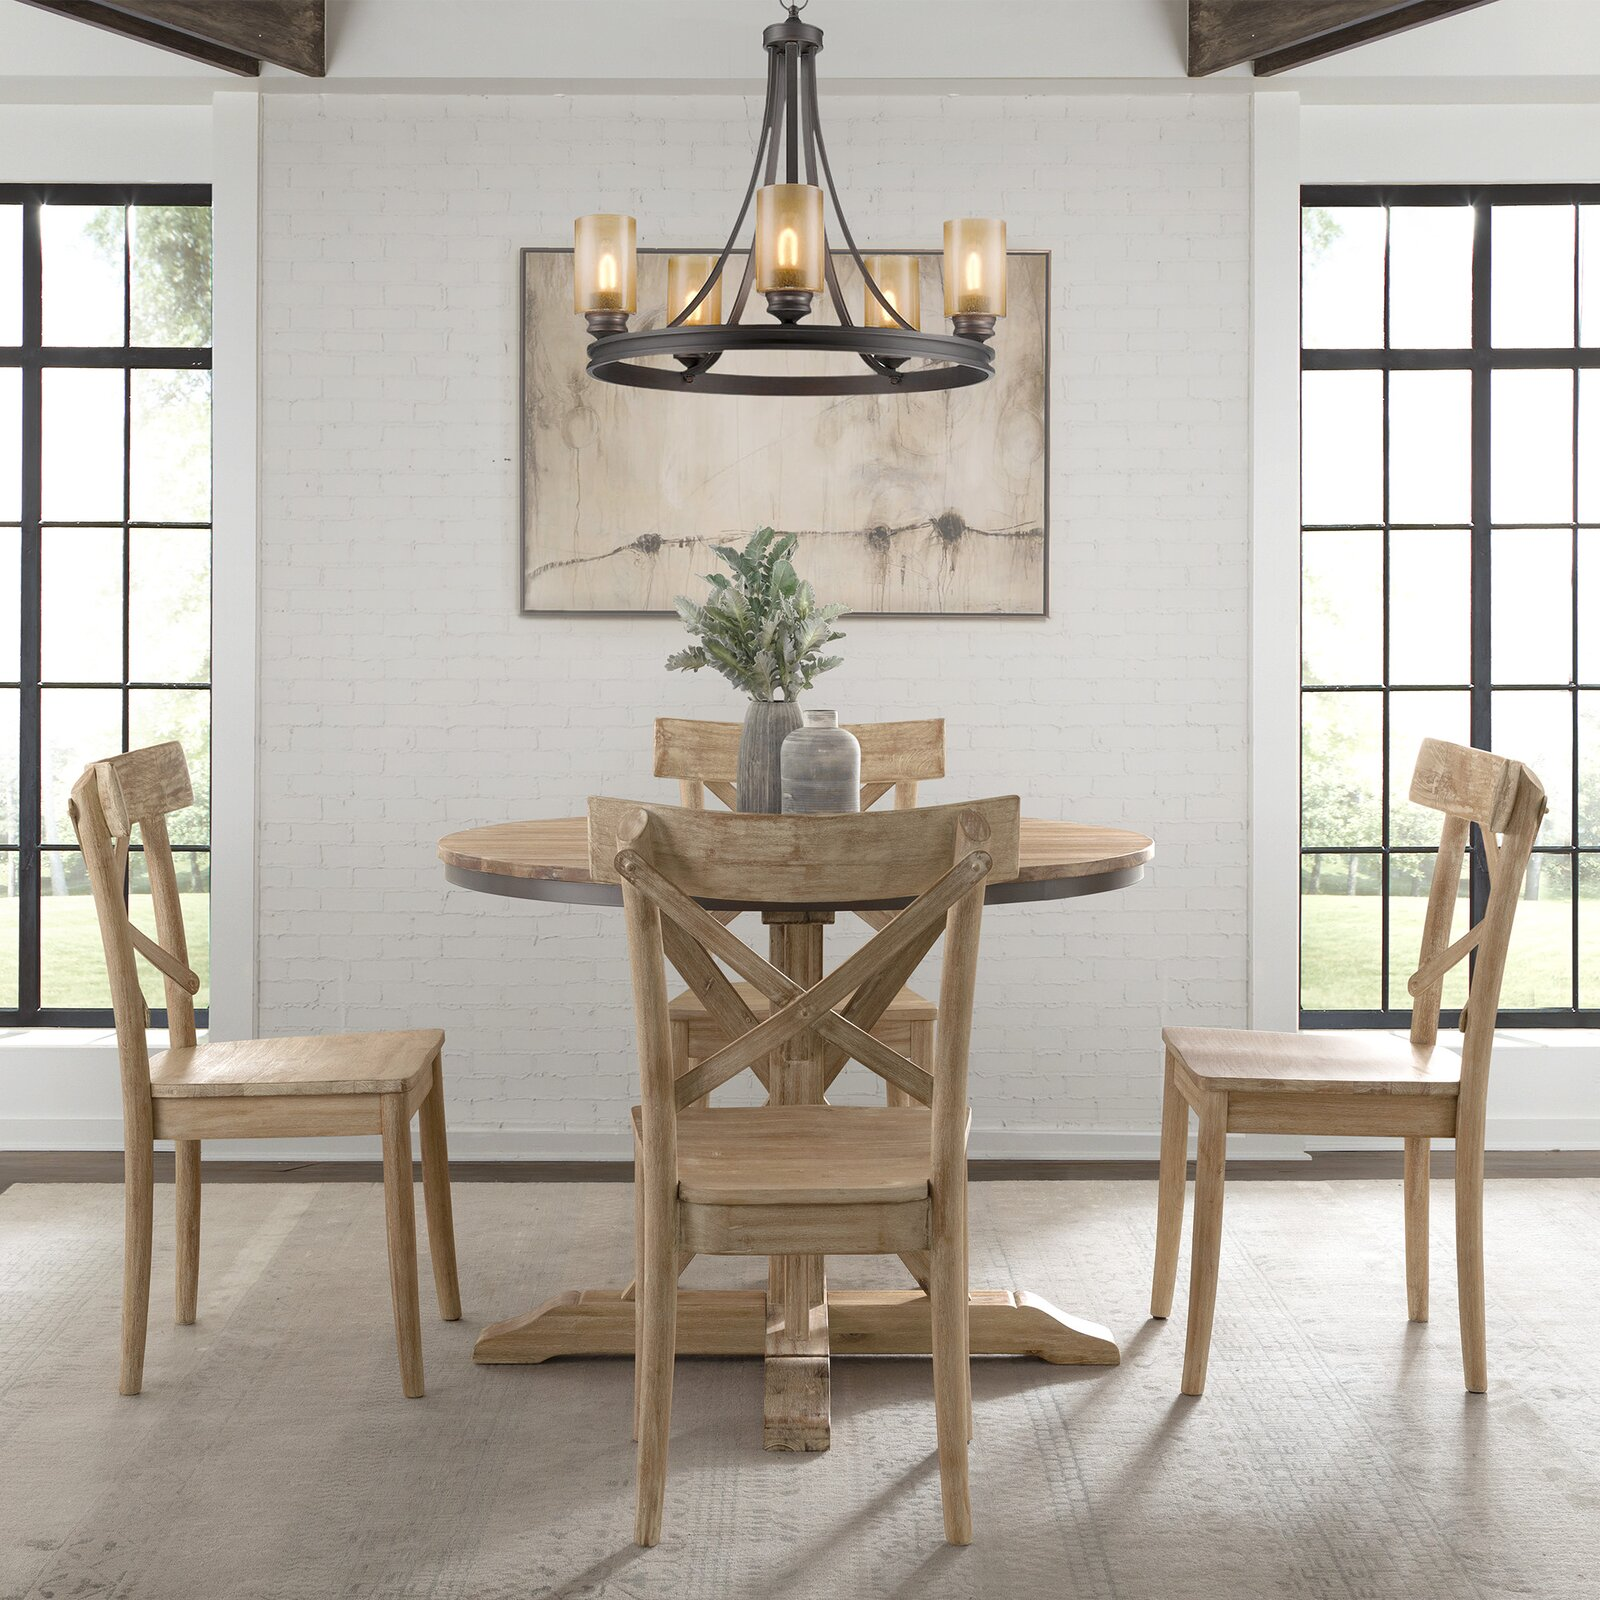 farmhouse-dining-table-and-chairs-set-light-natural-wood-finish-42-inch-round-table-x-back-chairs-seats-four